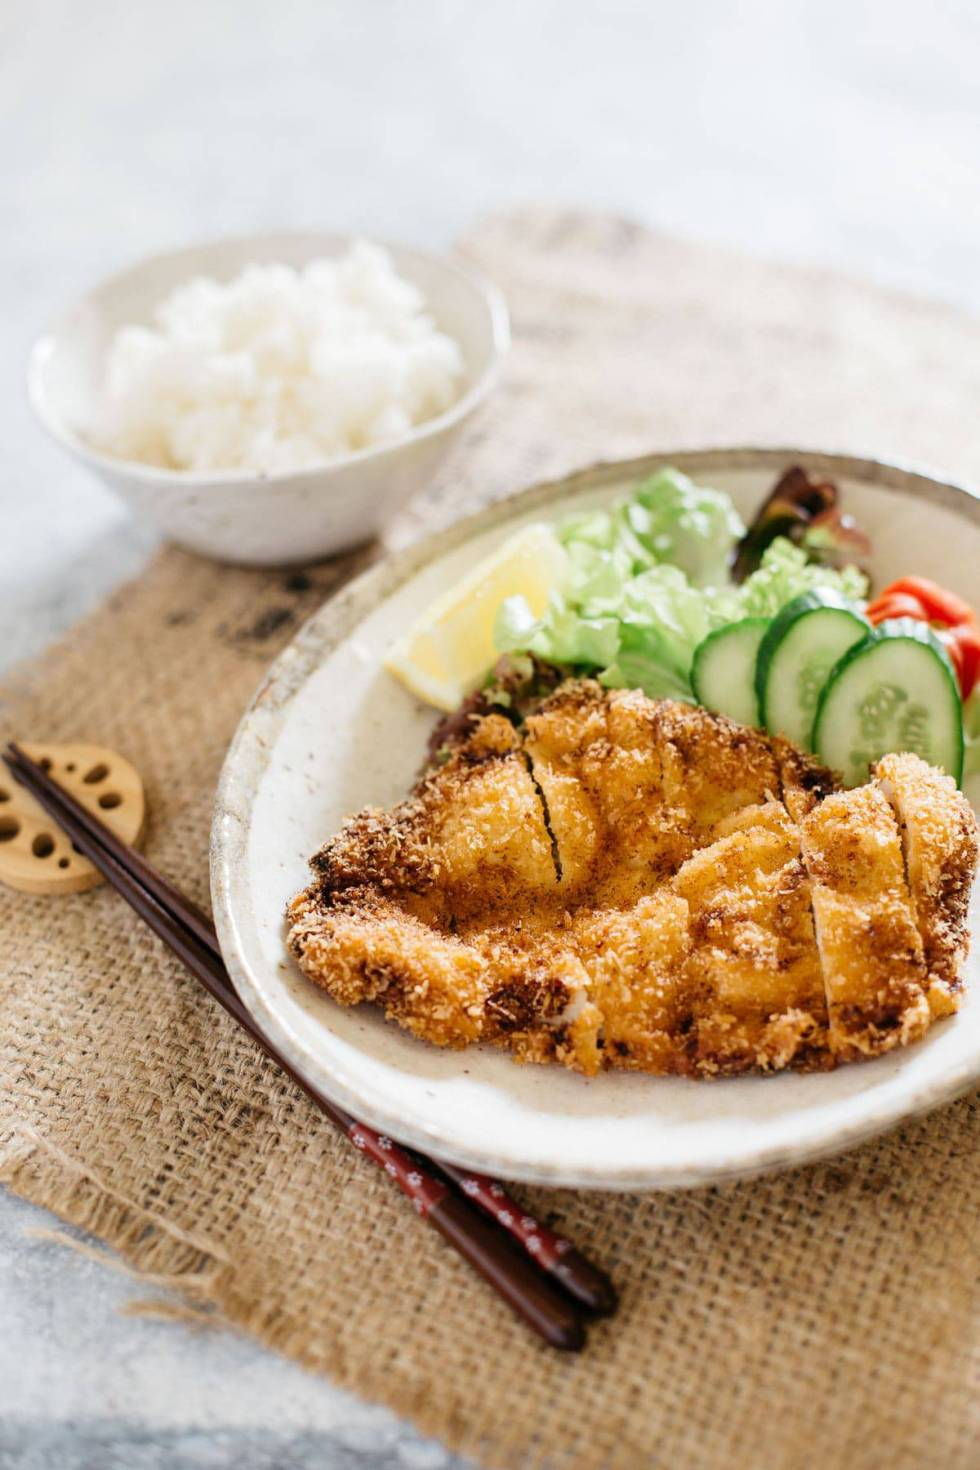 a bowl of rice, a plate of chicken katsu and green salad on an oval plate.